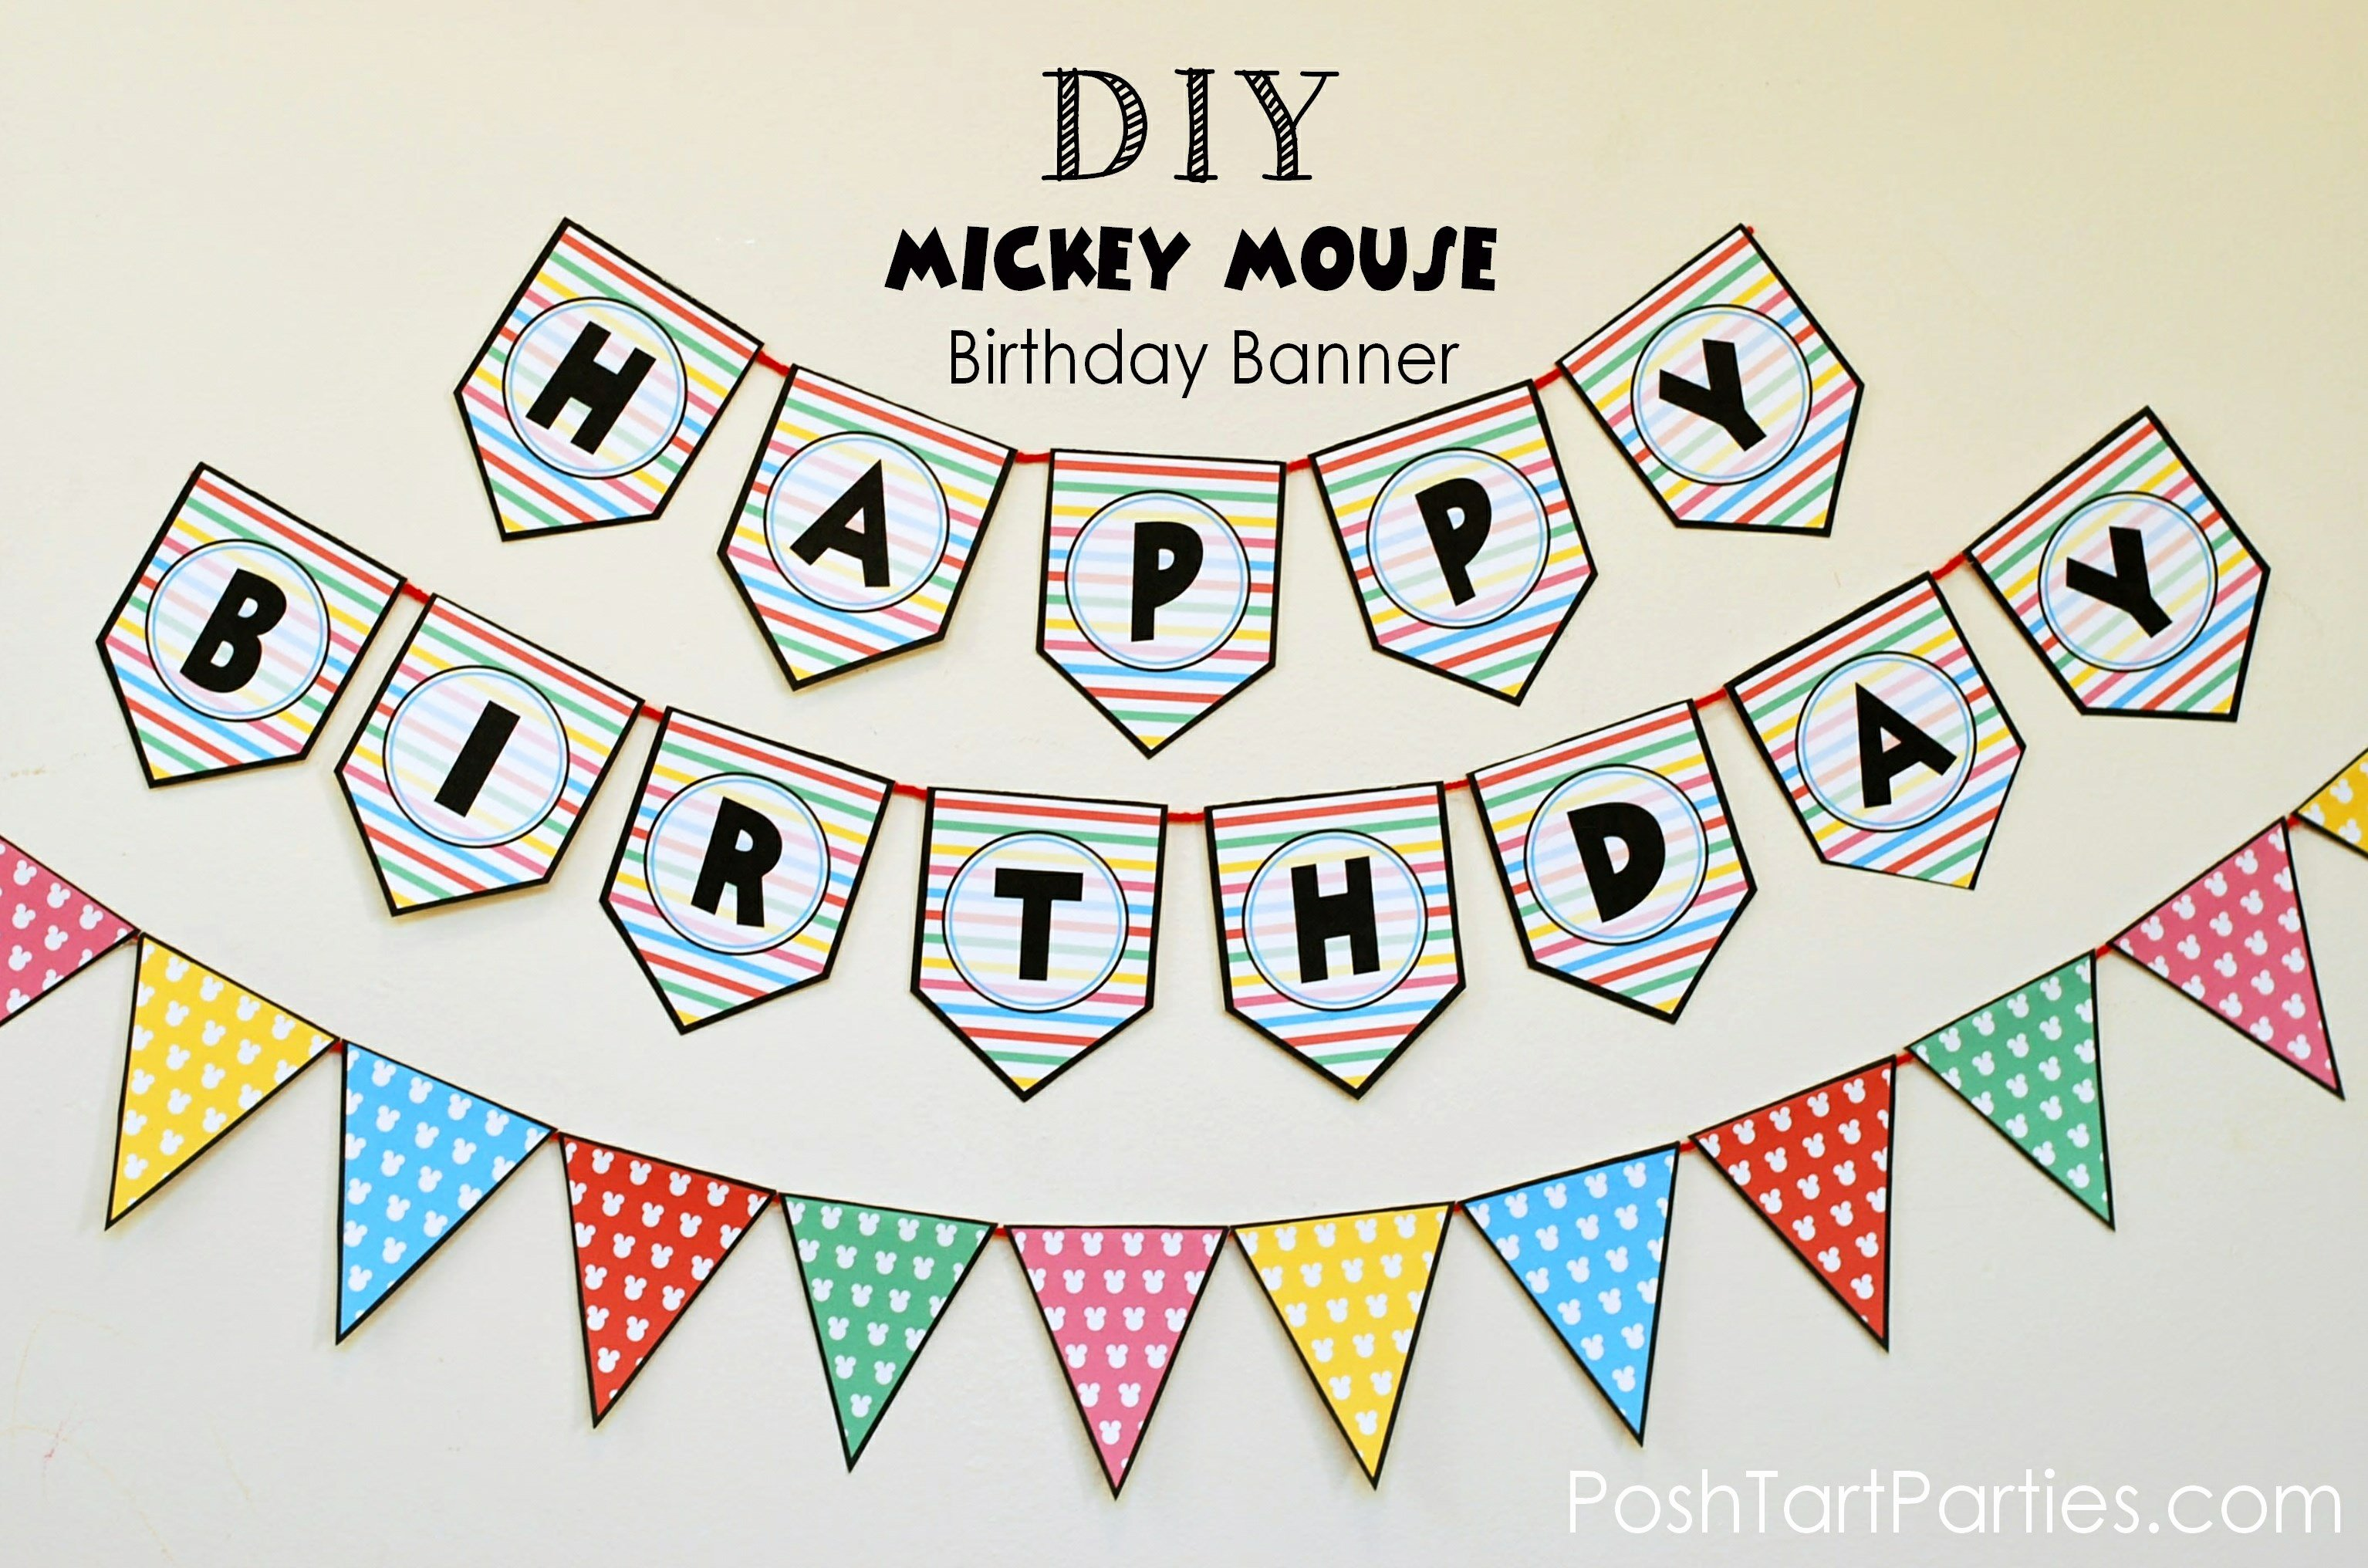 Printable Birthday Banner Template Beautiful Printables & Freebies